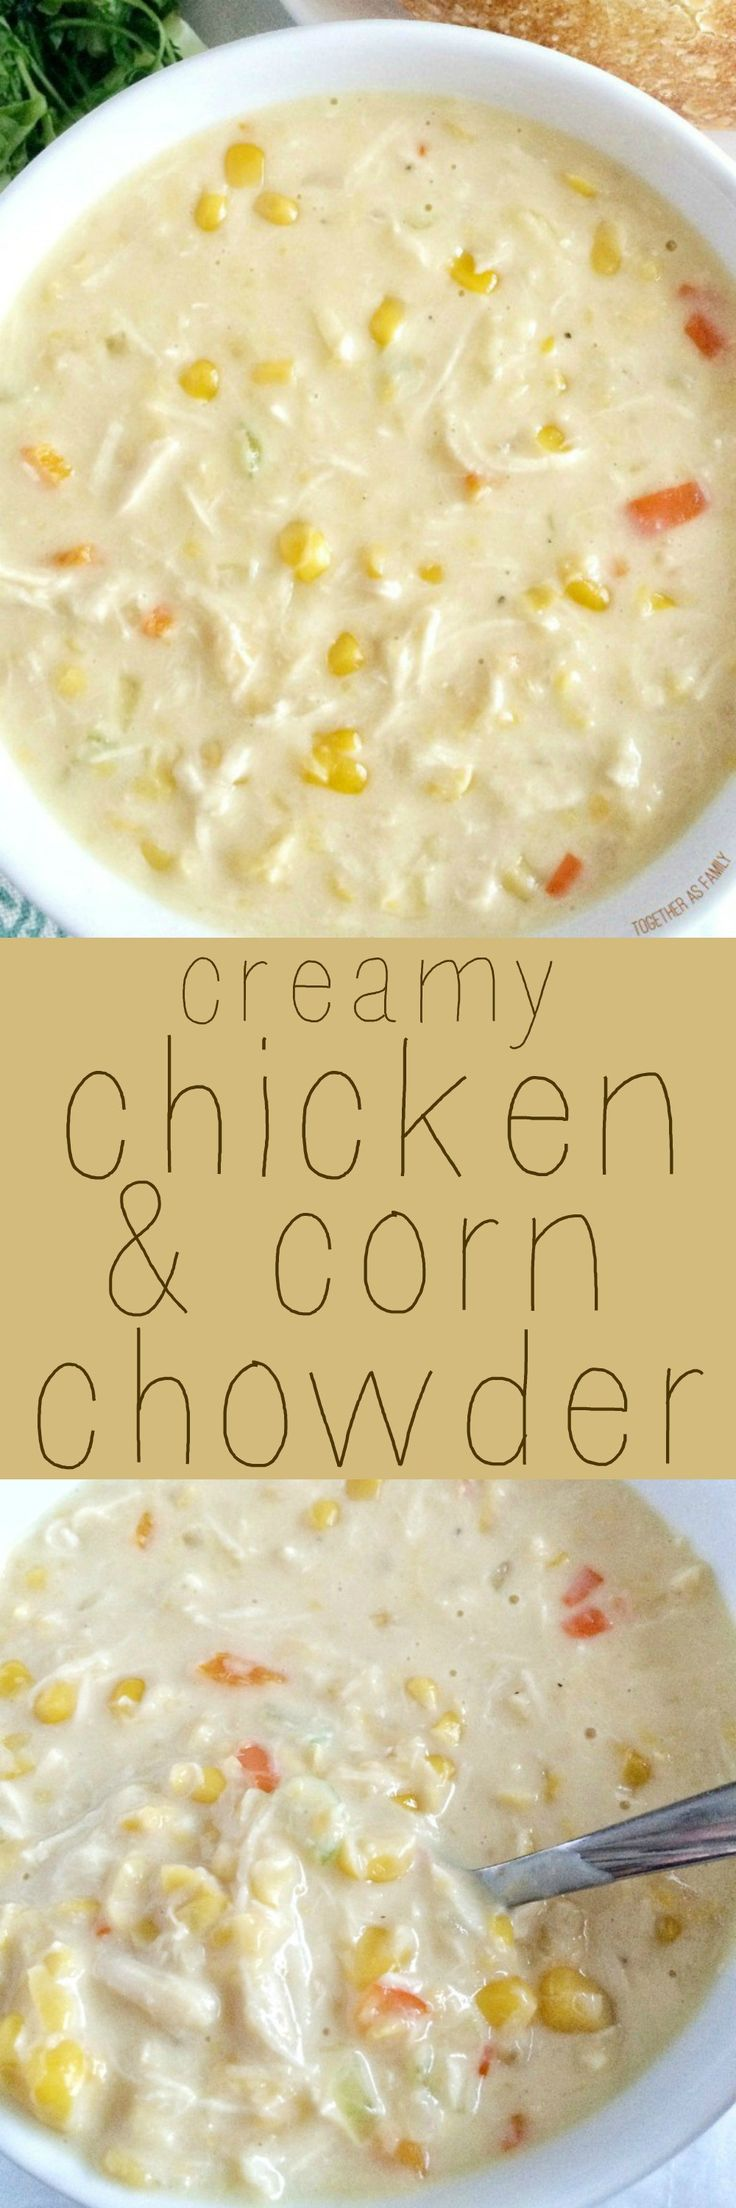 Warm up to big bowl of this creamy corn & chicken chowder. Comes together in 20 minutes so it's great for a busy weeknight meal!